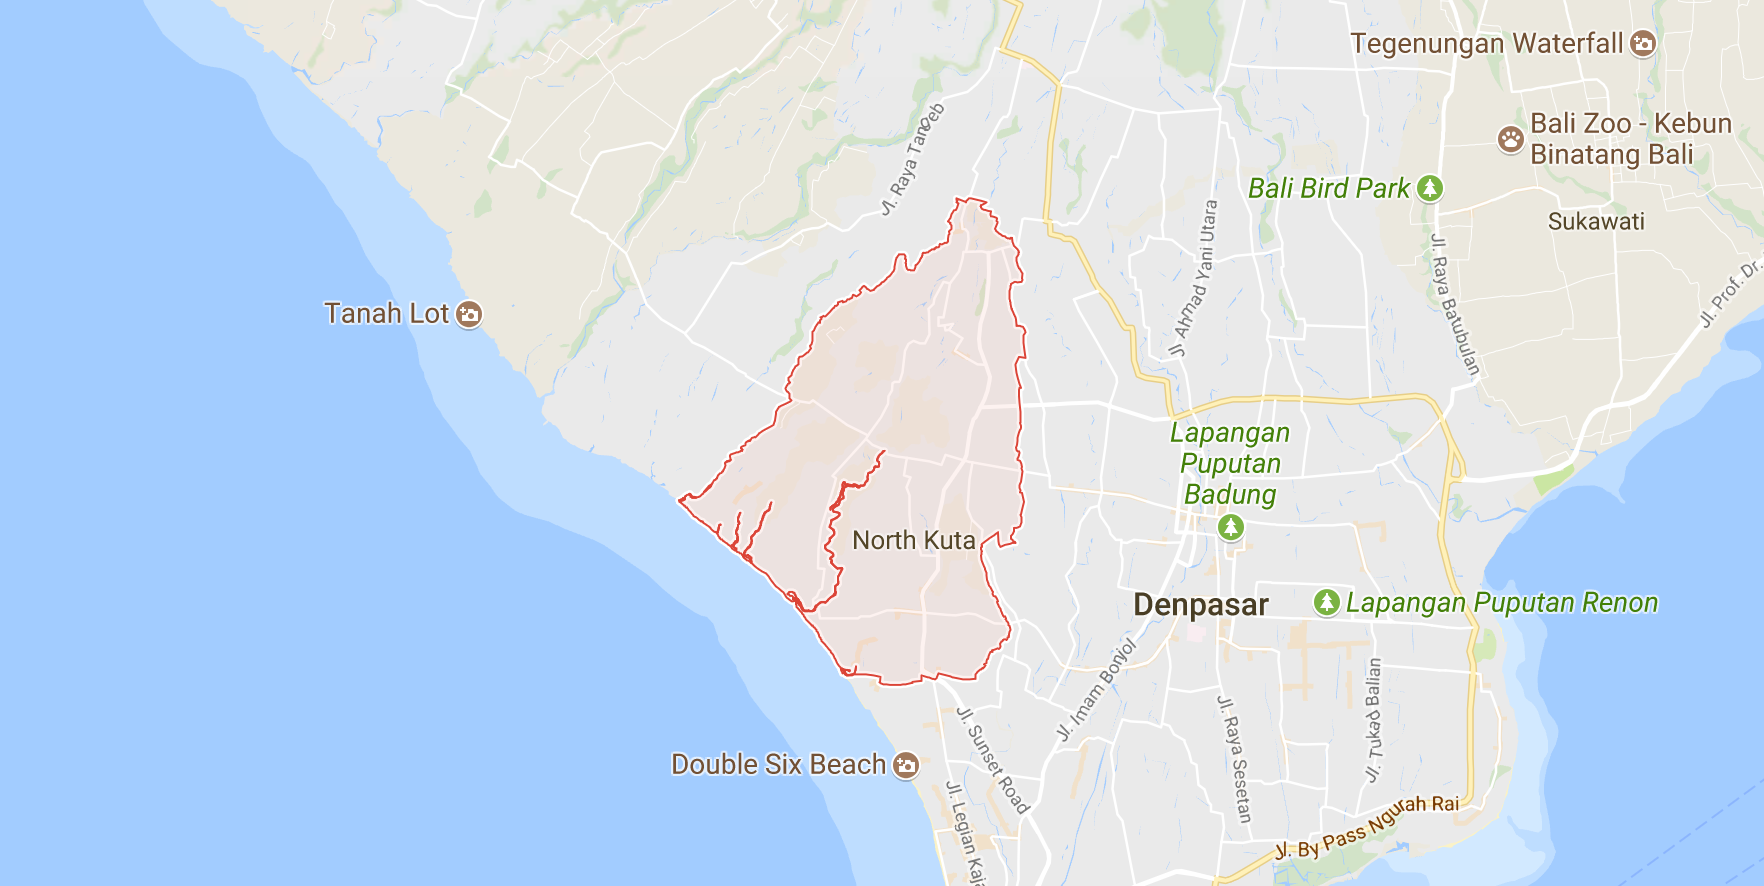 Map showing North Kuta's boundaries